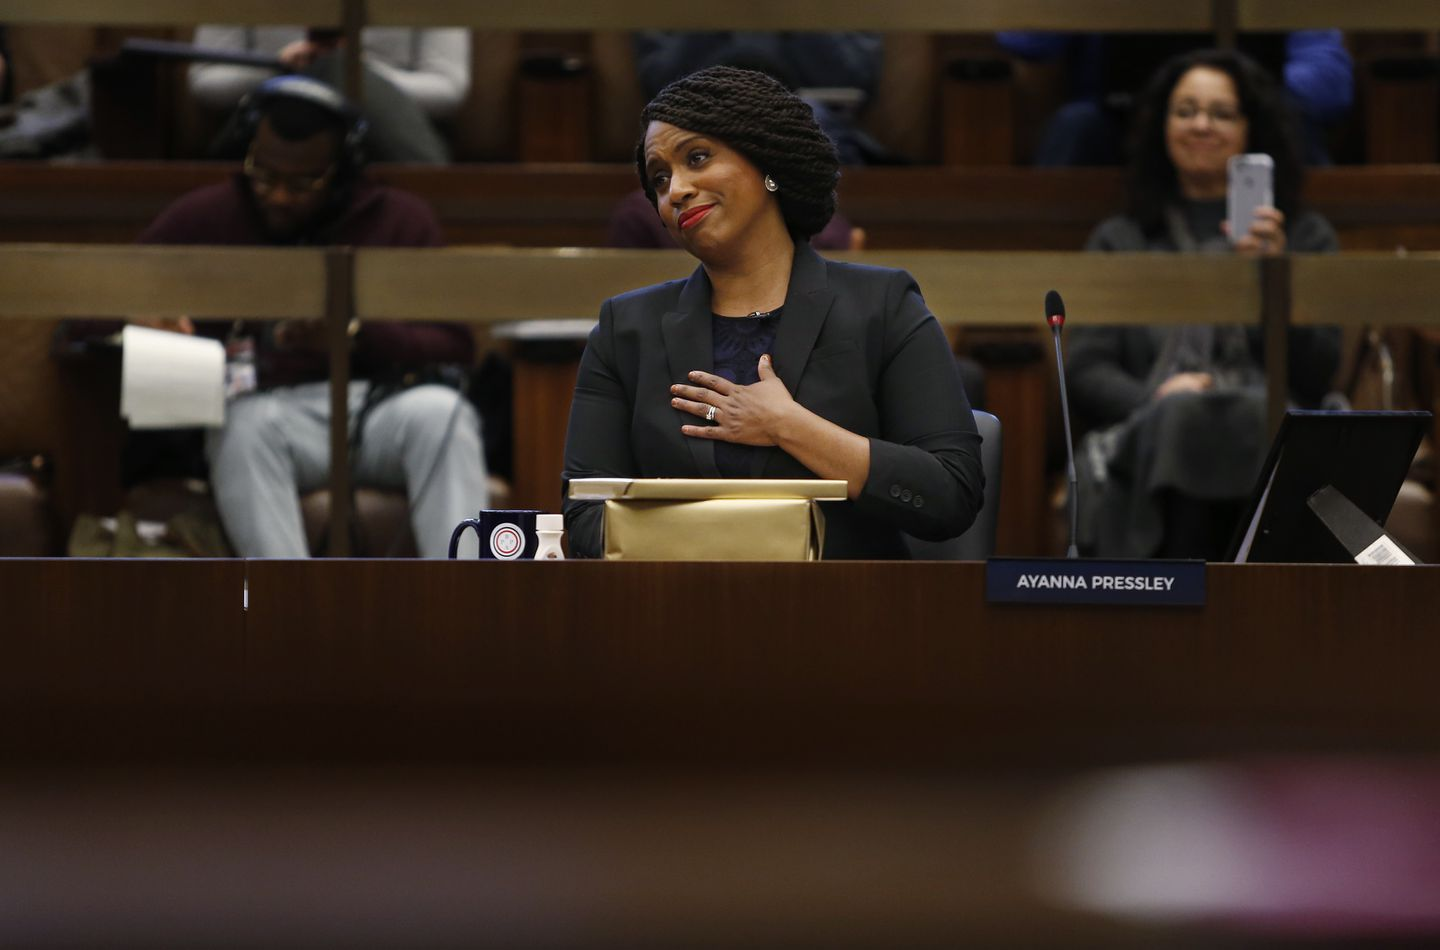 Congresswoman-elect Ayanna Pressley gestured as a fellow City Councilor wished her farewell at City Hall.